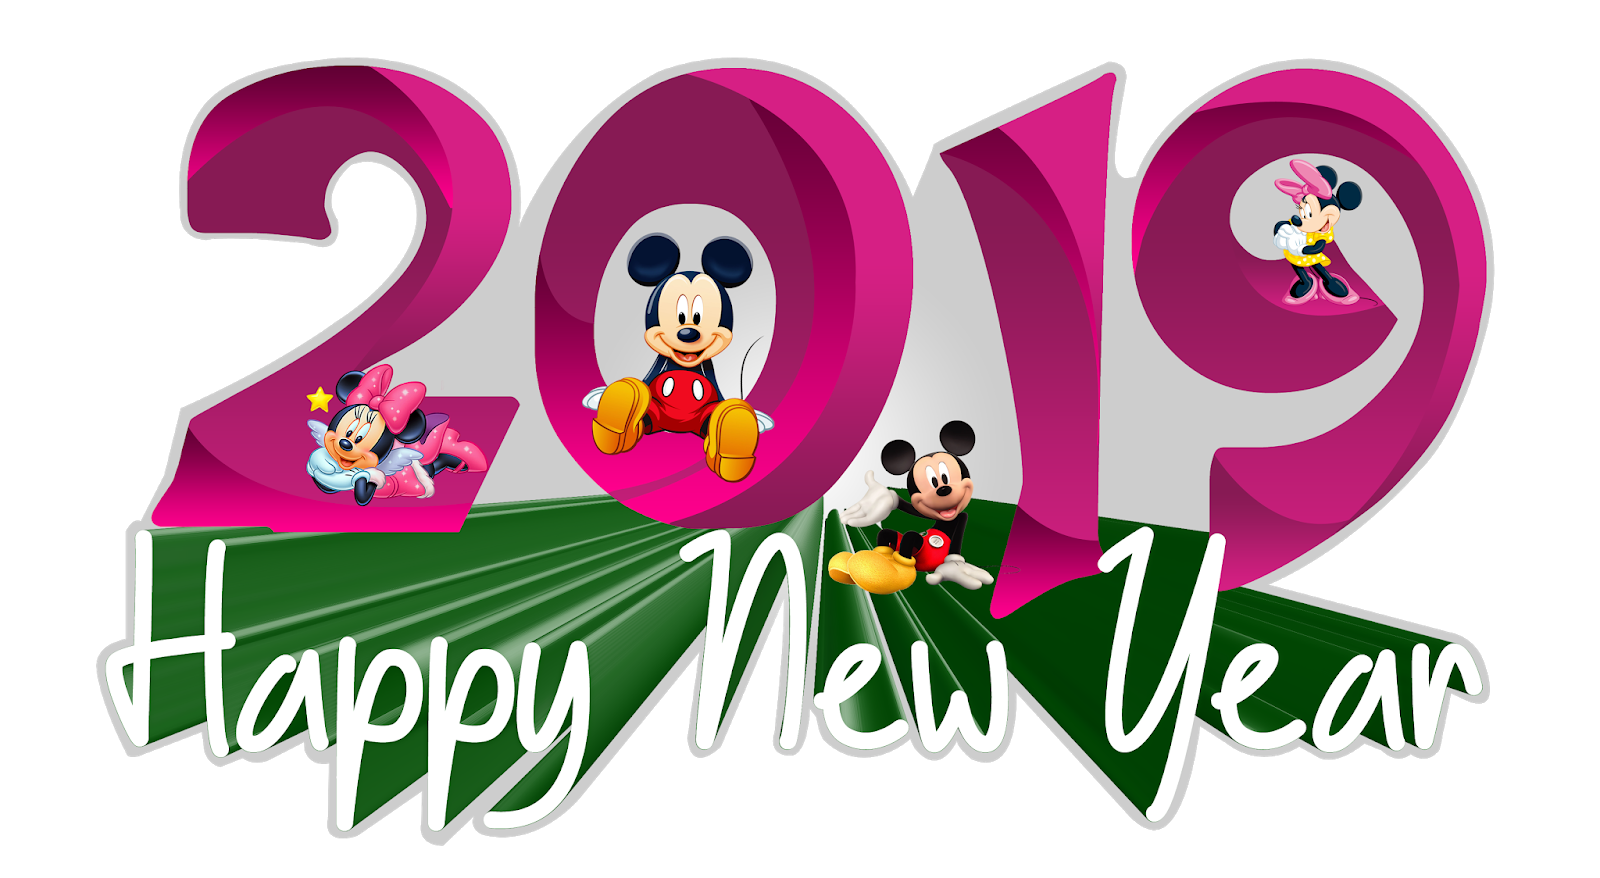 2019 Happy New Year Transparent PNG Pictures | naveengfx